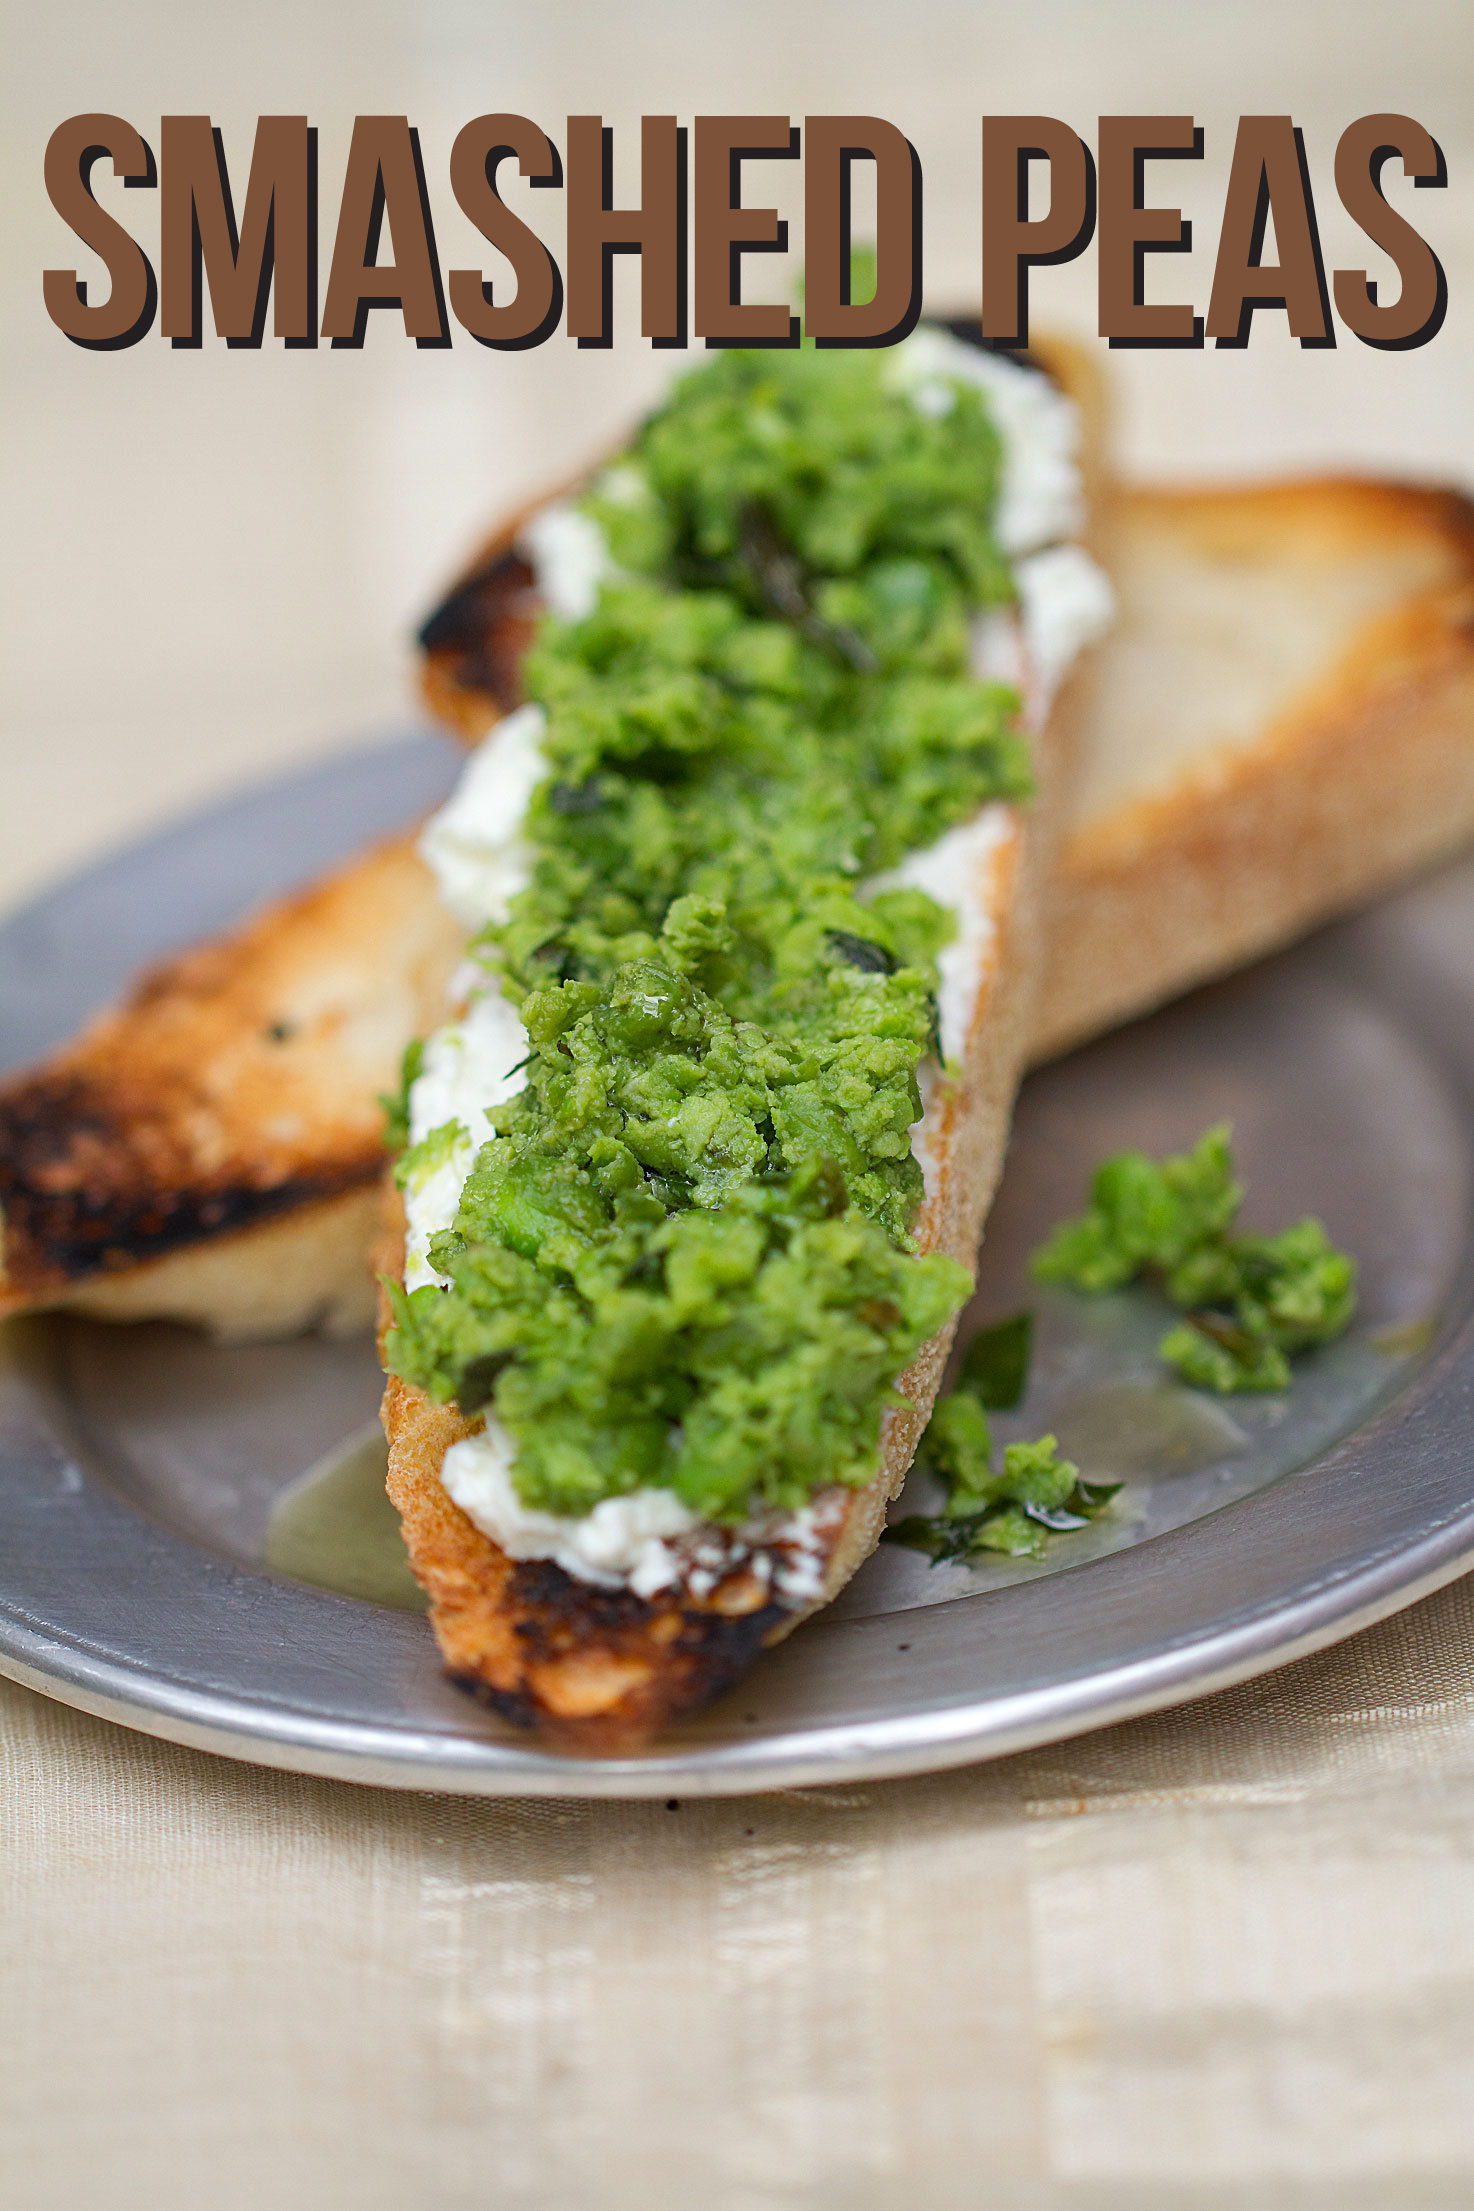 Smashed Peas and Whipped Goat Cheese on Toast